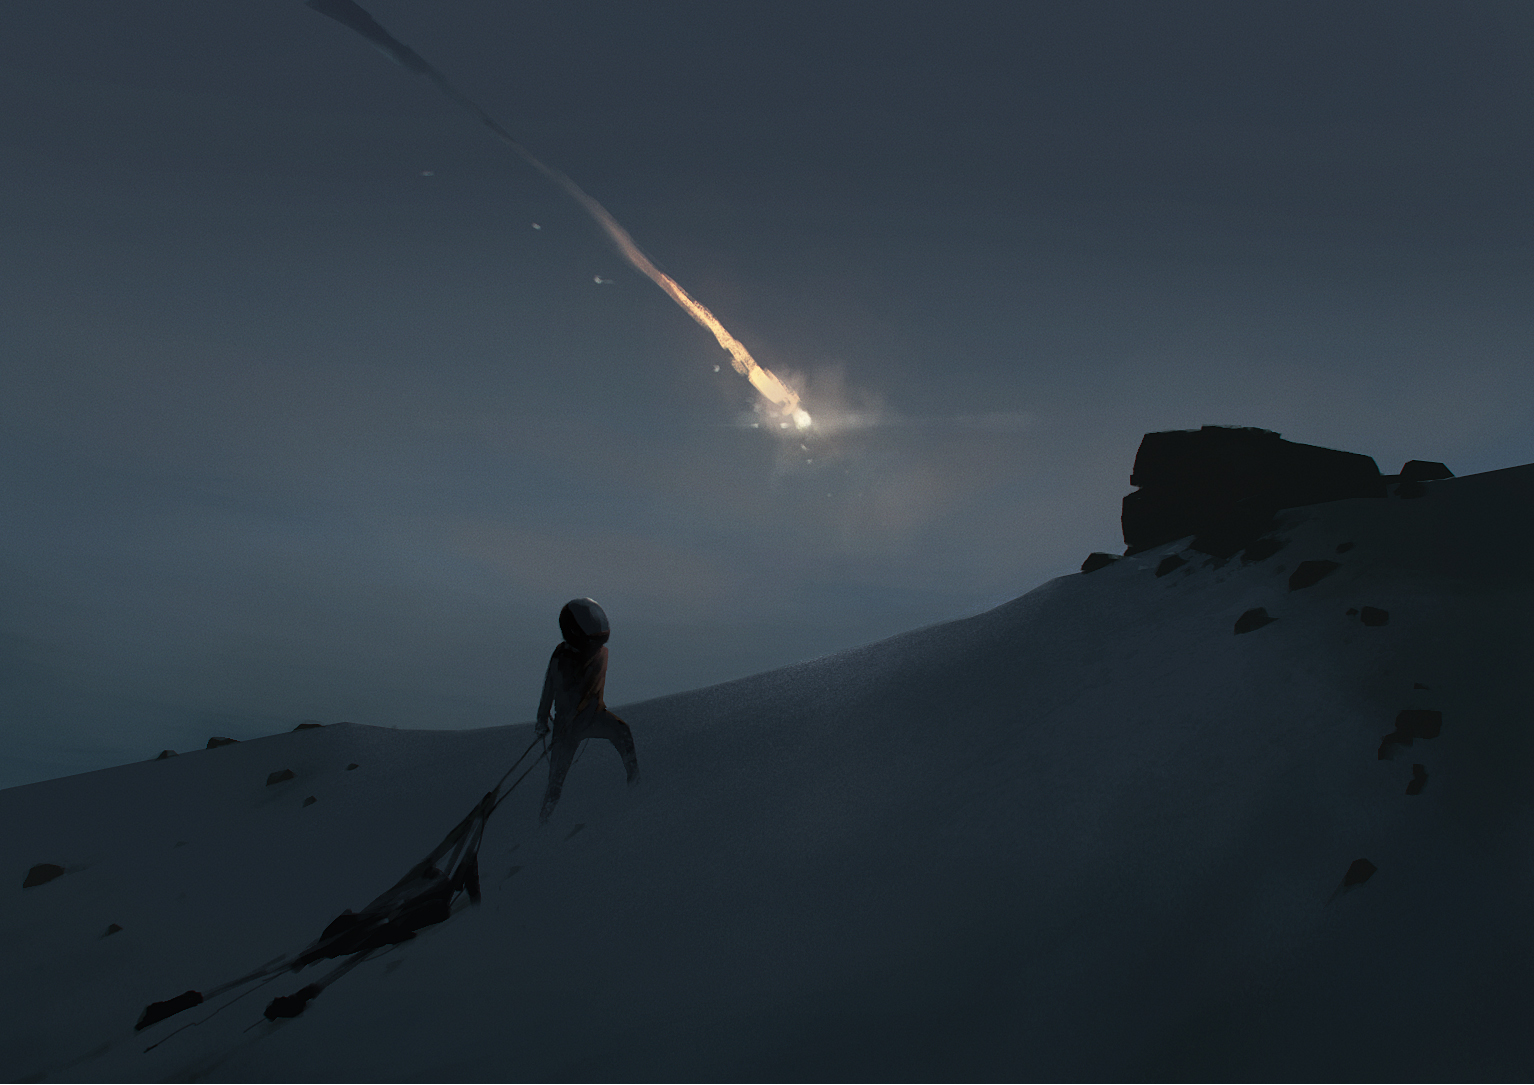 Falling pod. Art from the upcoming title currently in development at Playdead